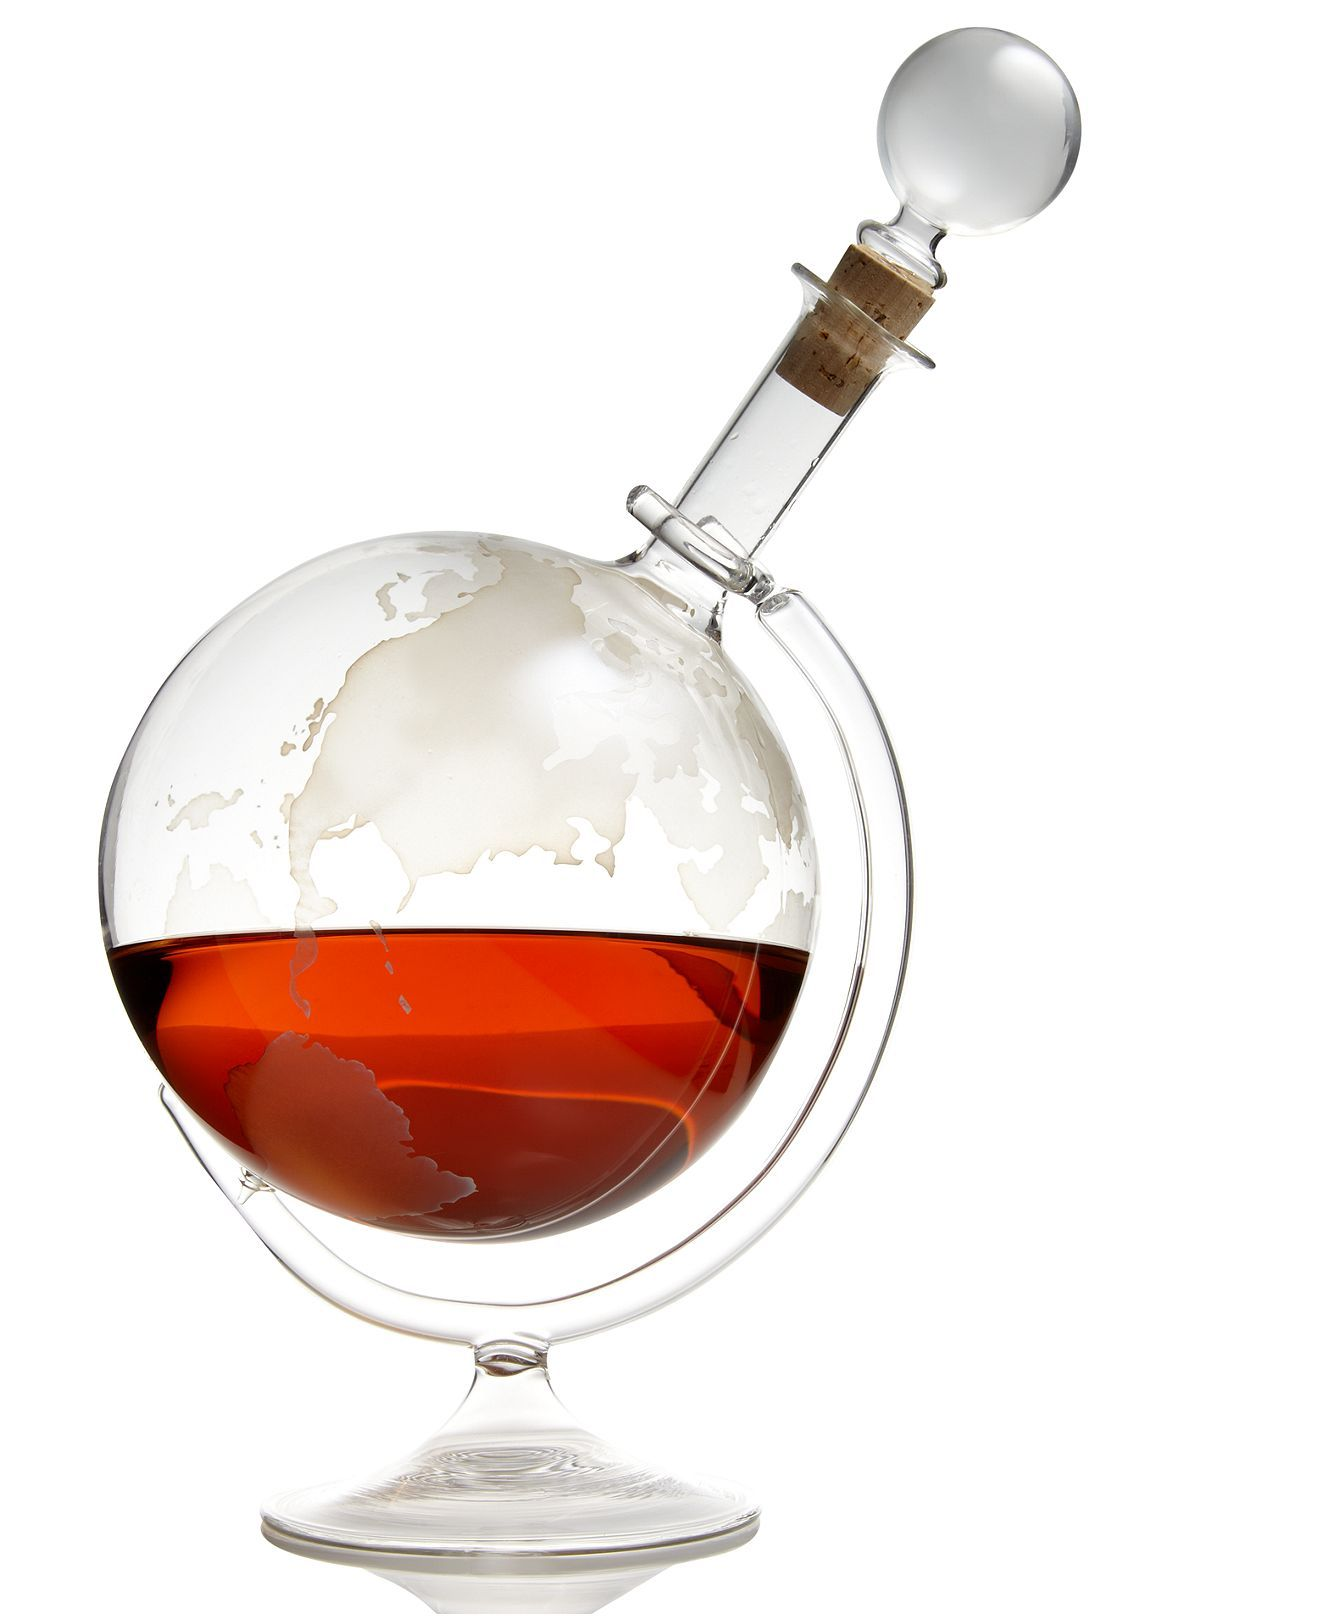 Wine Enthusiast Etched Globe Decanter I See The Captain Having One Of These Wine Wine Gadgets Wine Accessories